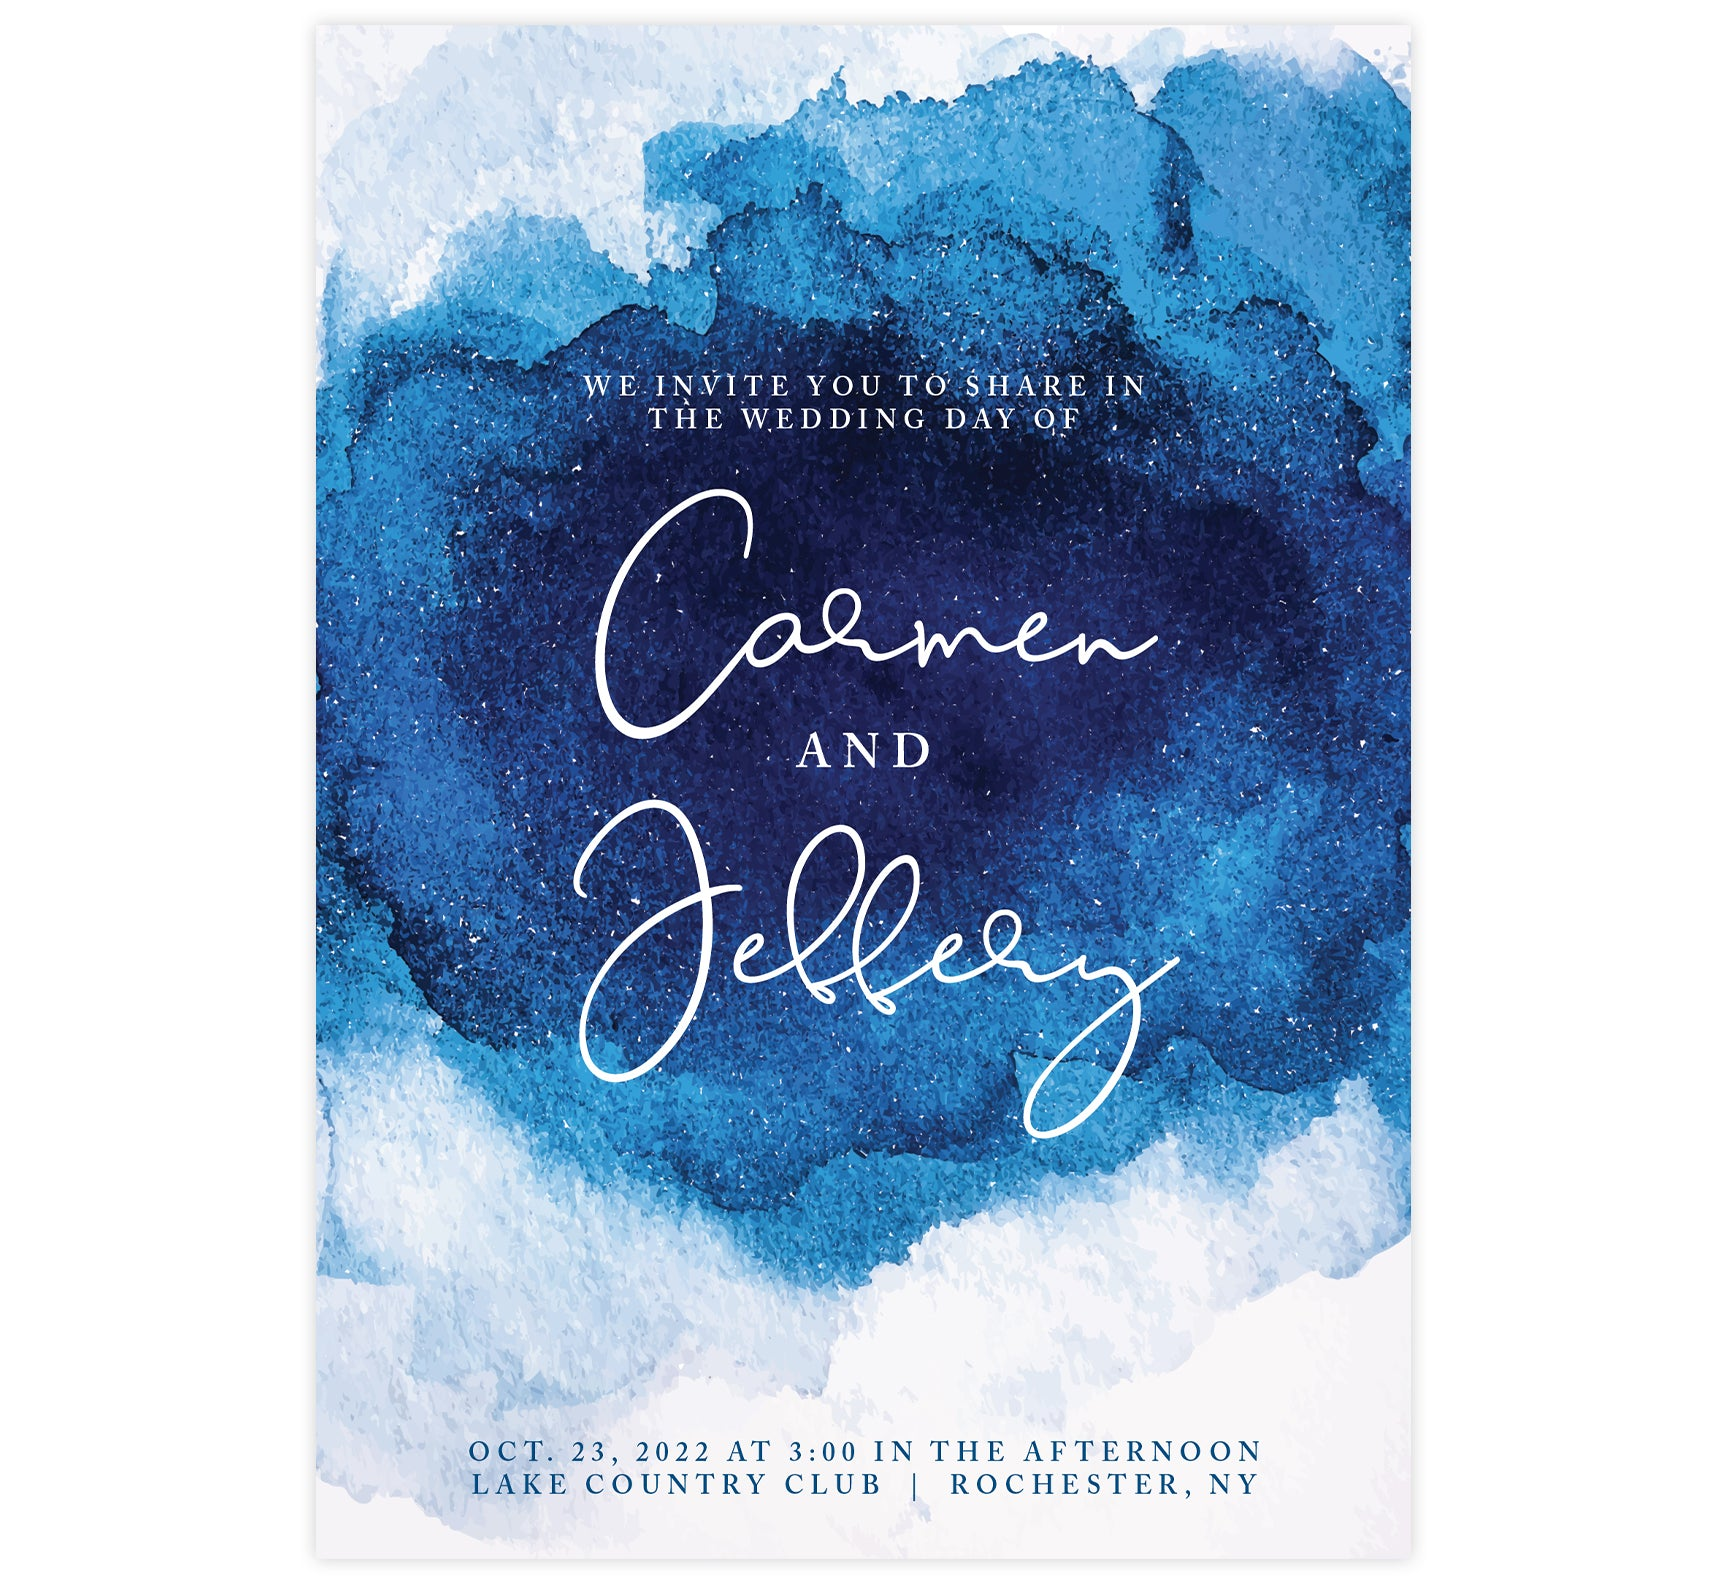 Dramatic Blue Wedding Invitation; White background with deep blue watercolor in the middle, large white text for the names and small details below in blue.